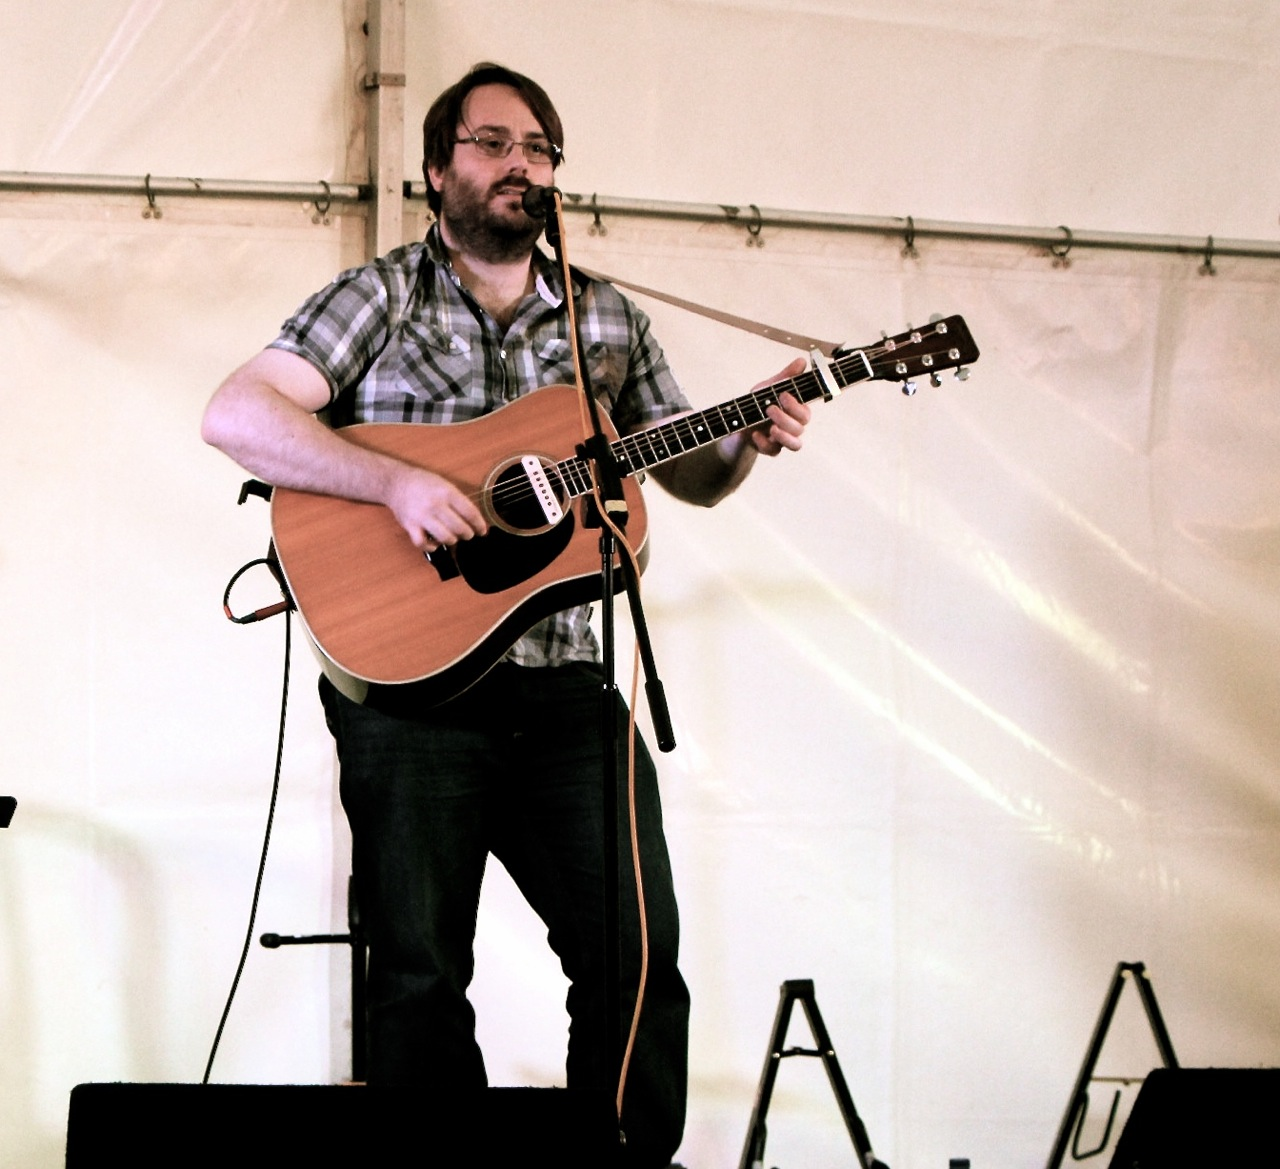 Rob finlay live at Woodfest 2014